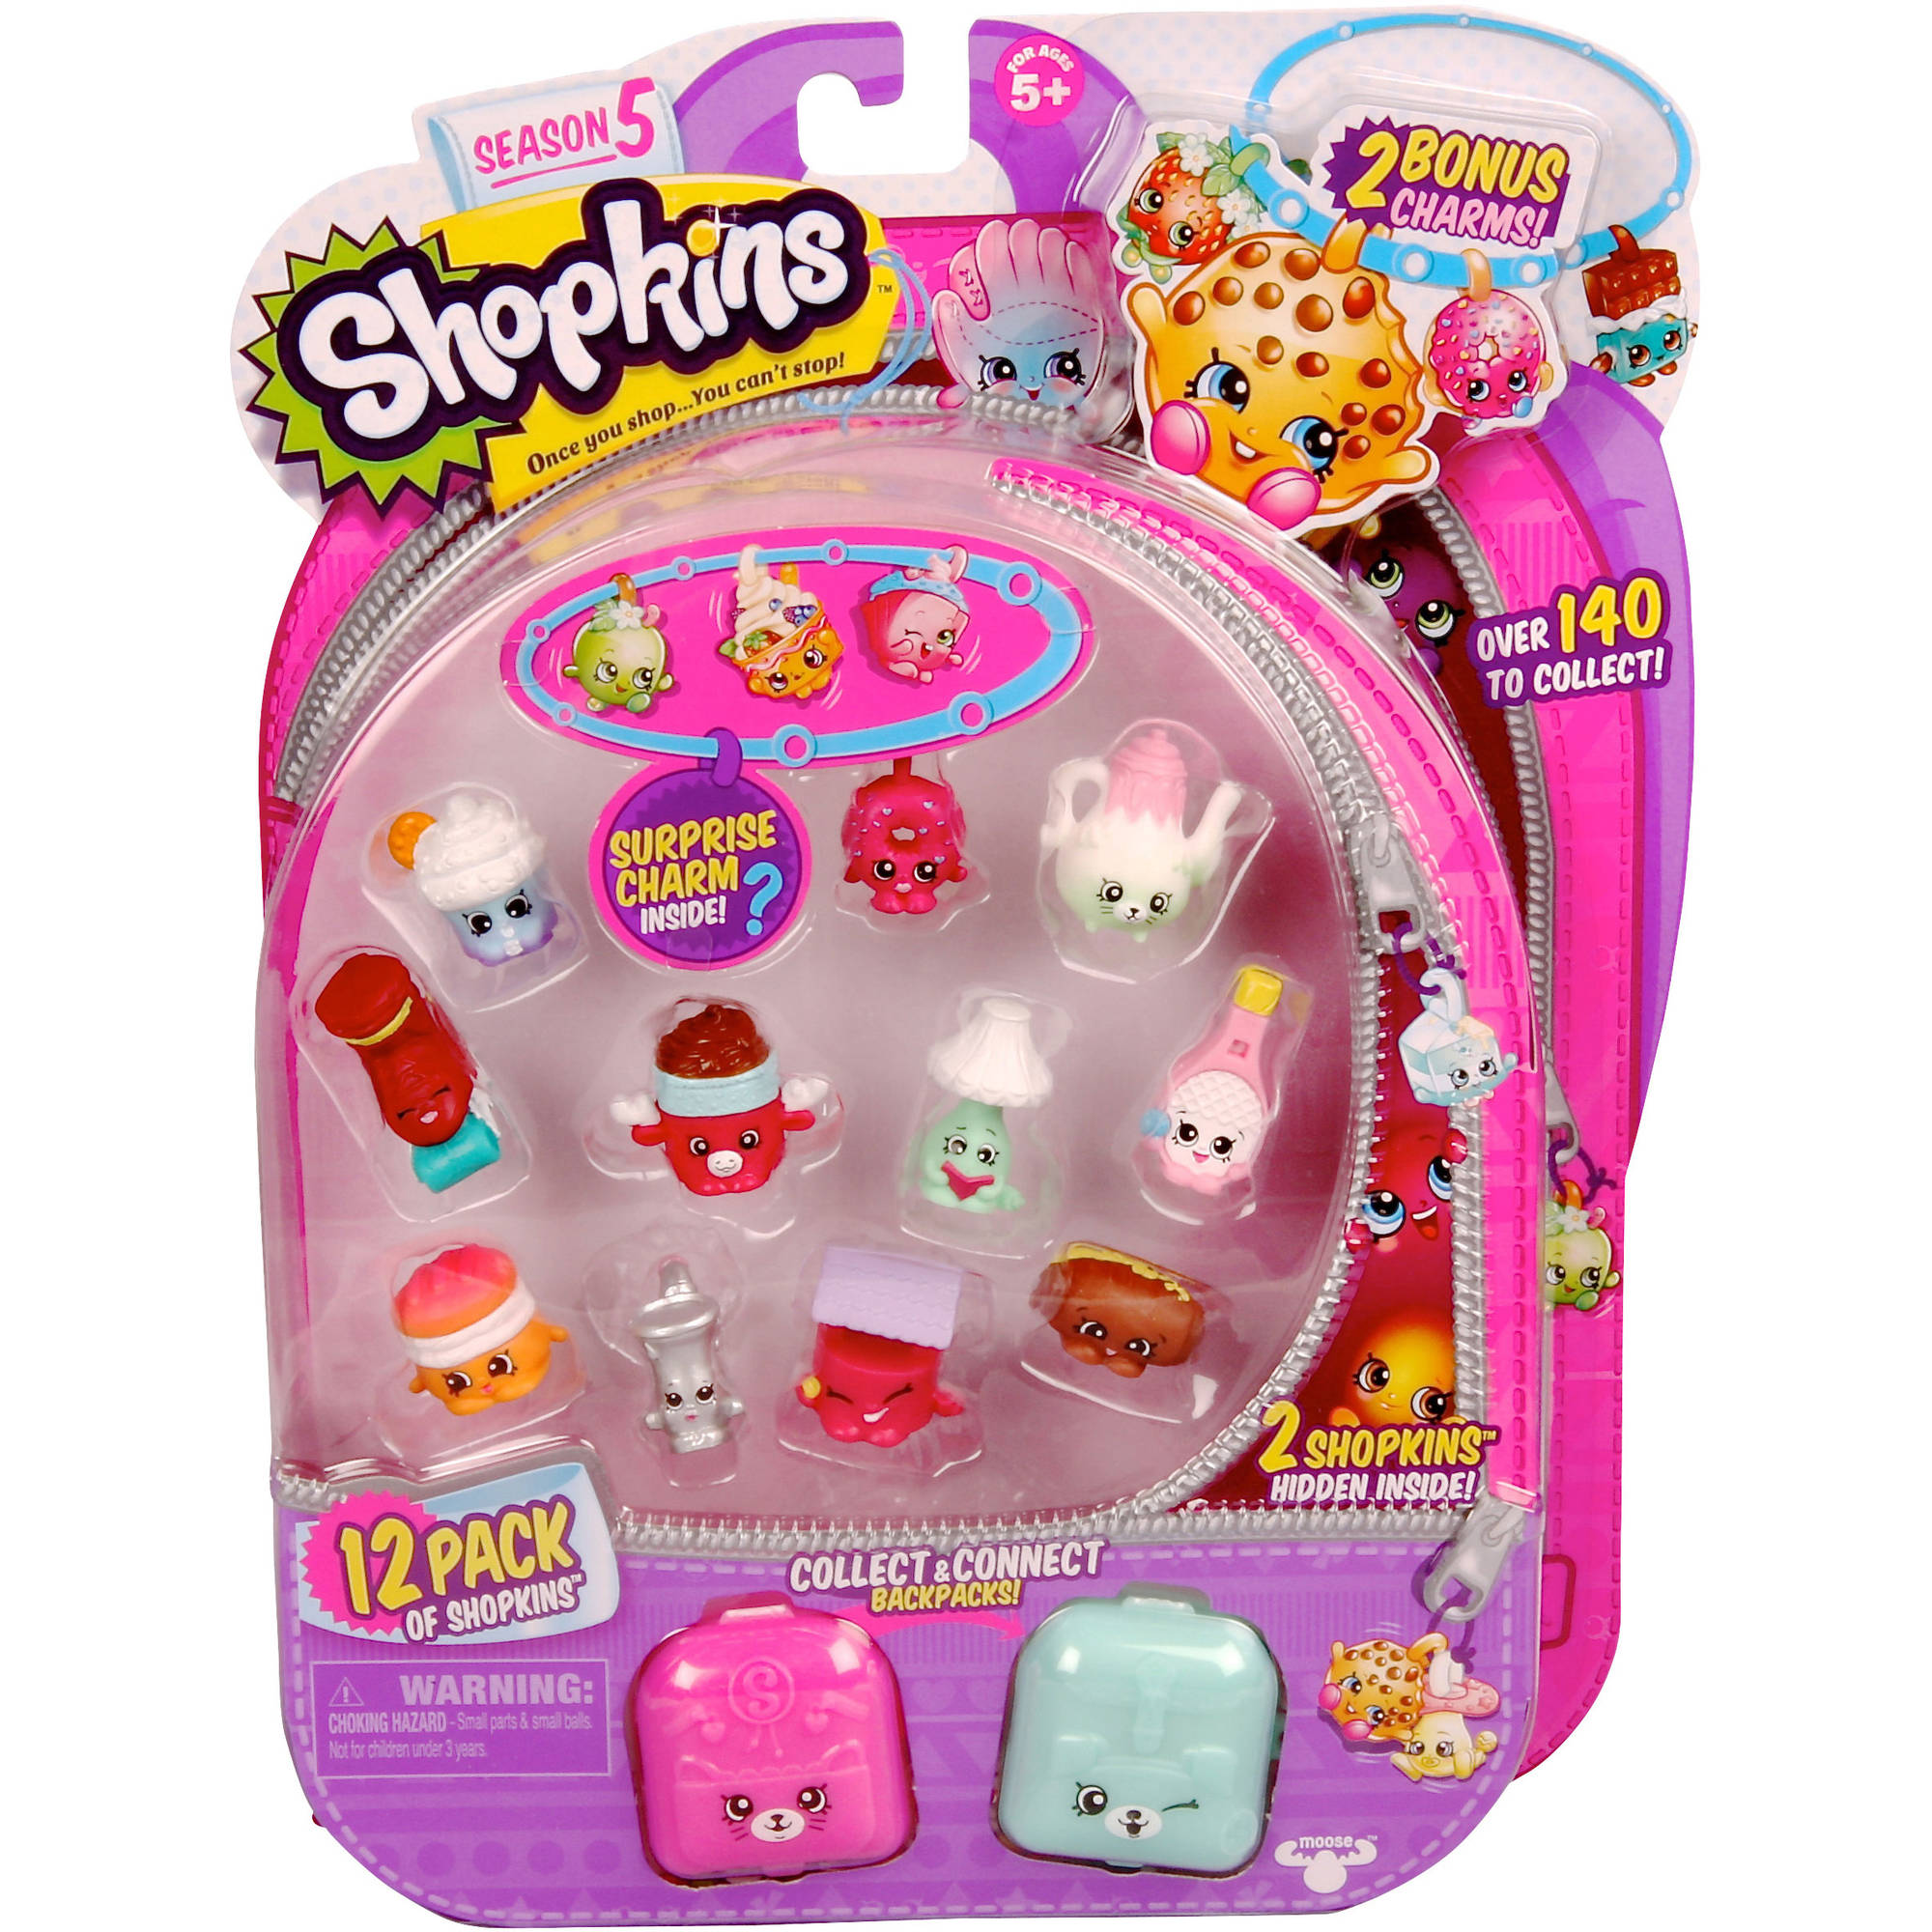 Shopkins toys and merchandise why people are so in love with them